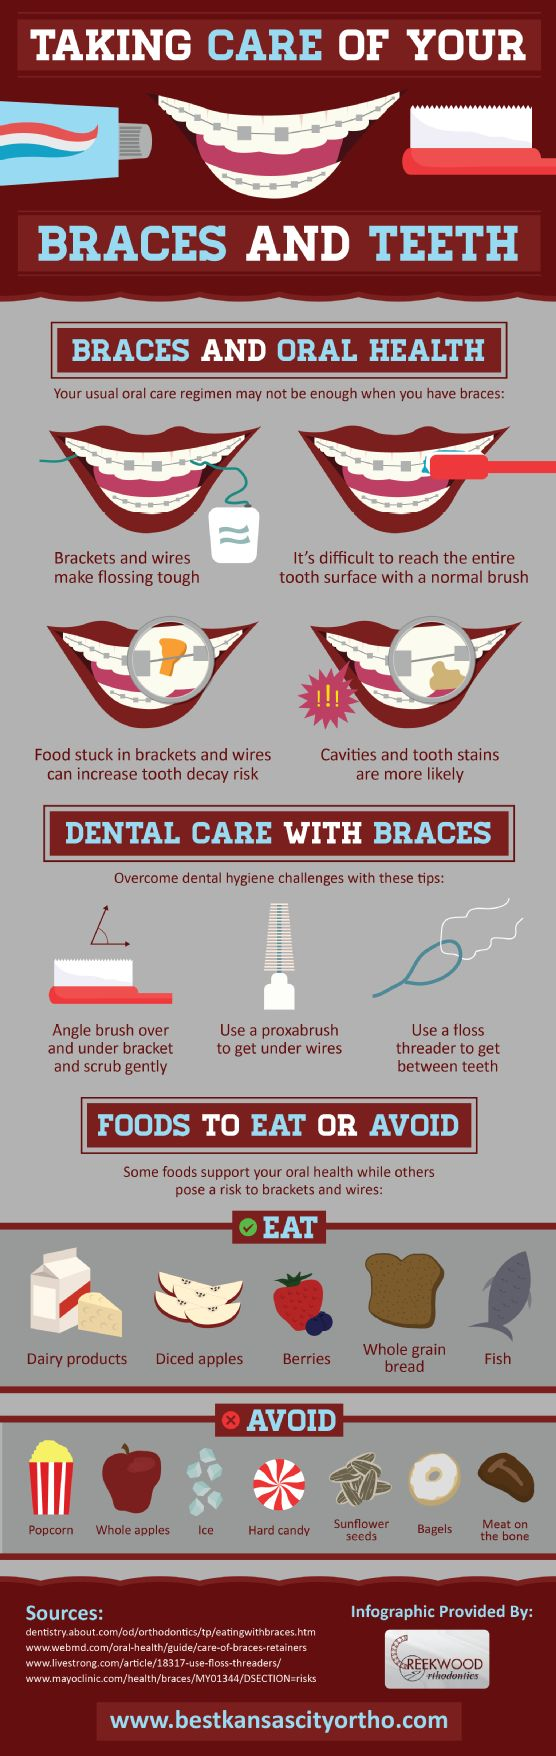 Make the most of your orthodontic treatment by learning what to eat and what to avoid. Some foods are too hard and may damage the wires or brackets. D